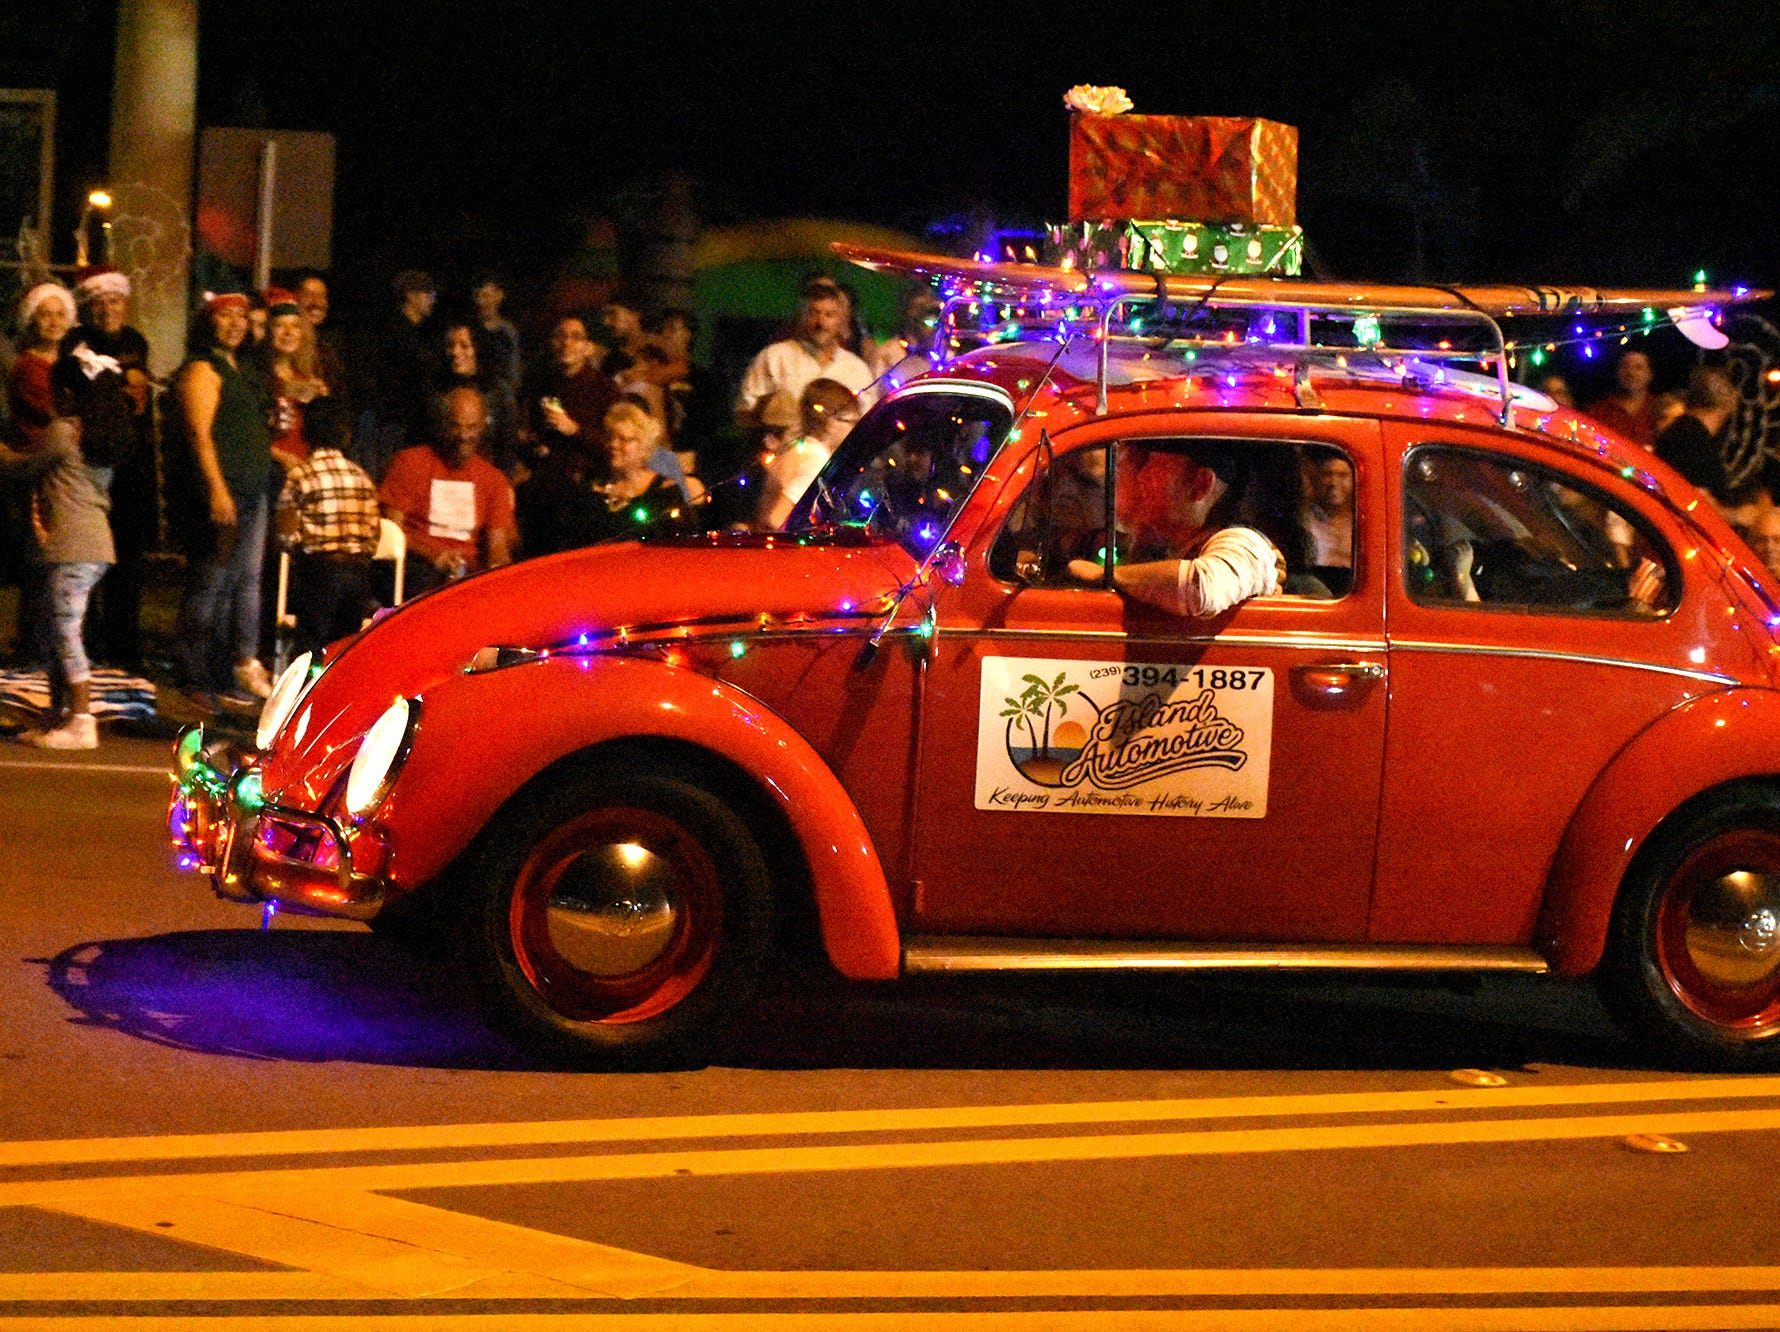 Island Automotive's entries included this colorful bug. Marco's Christmas Island Style street parade marched down San Marco Road on Saturday night, to the delight of spectators.